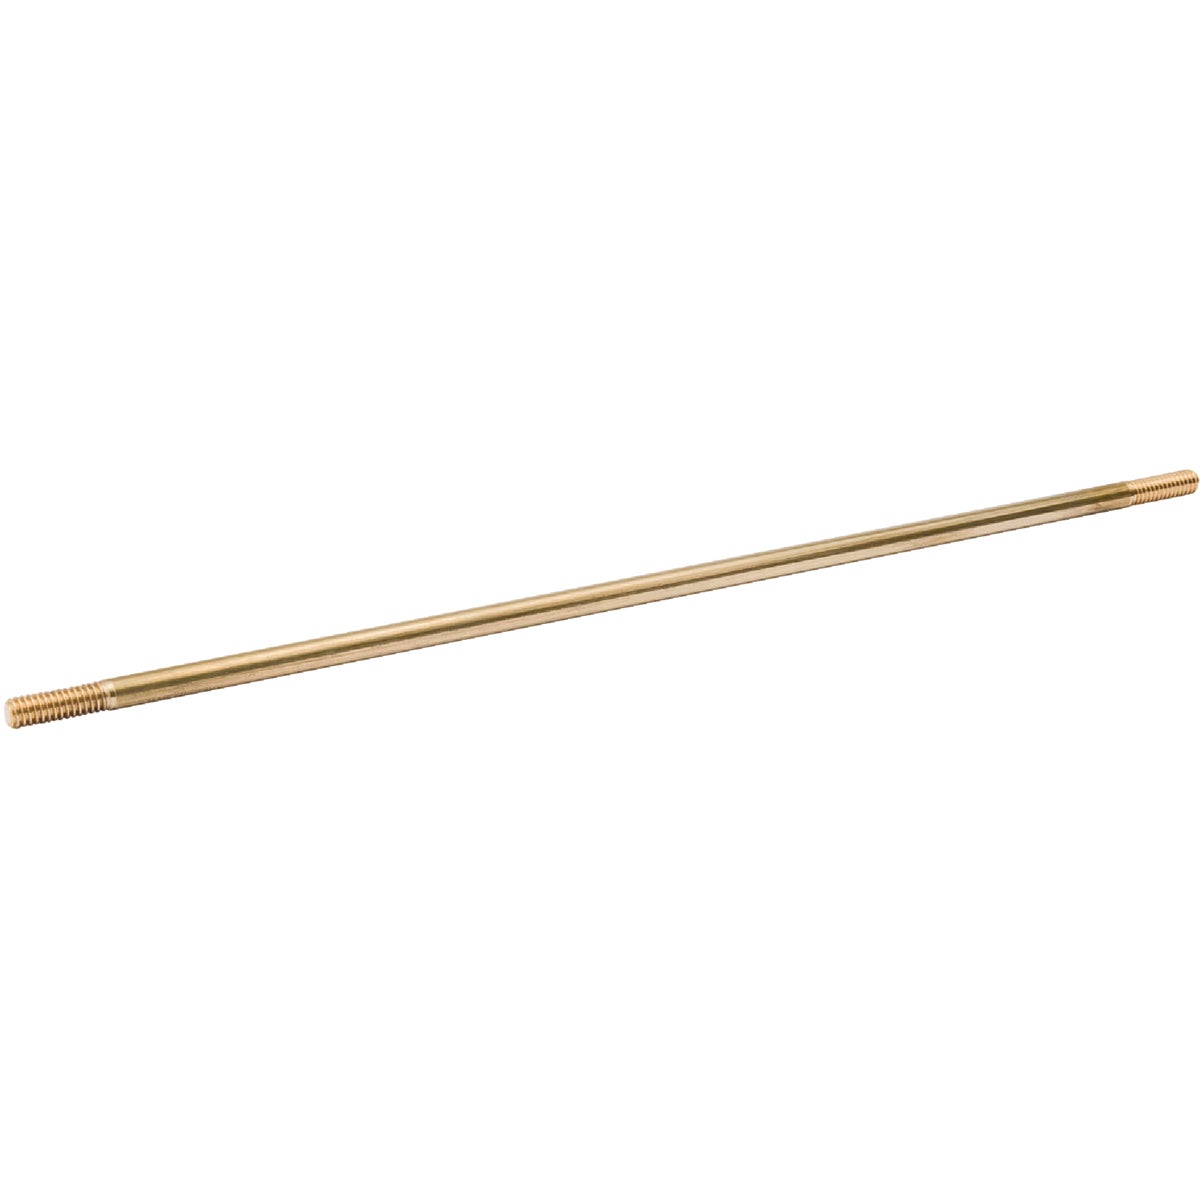 "12"" BRASS FLOAT ROD - 109-852 by Mueller B K"